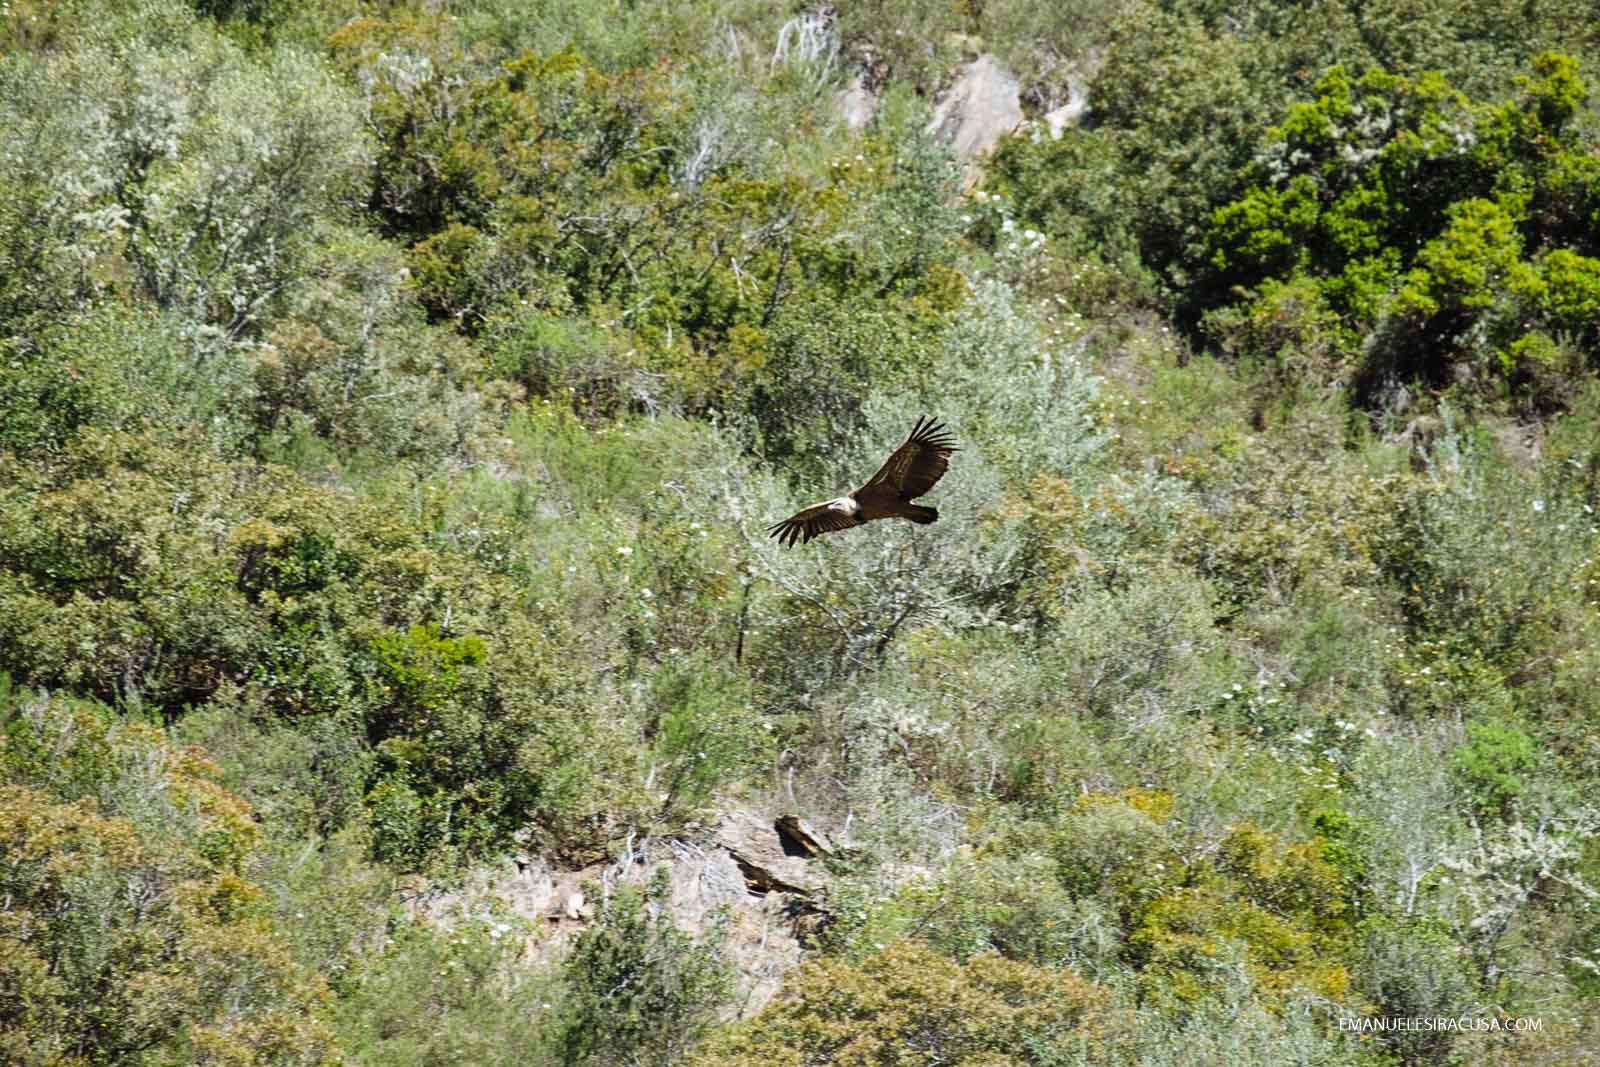 A vulture flies in the proximity of Malpica do Tejo, in the Tejo Internacional Natural Park, close to the Spain border, Malpica do Tejo, 2016